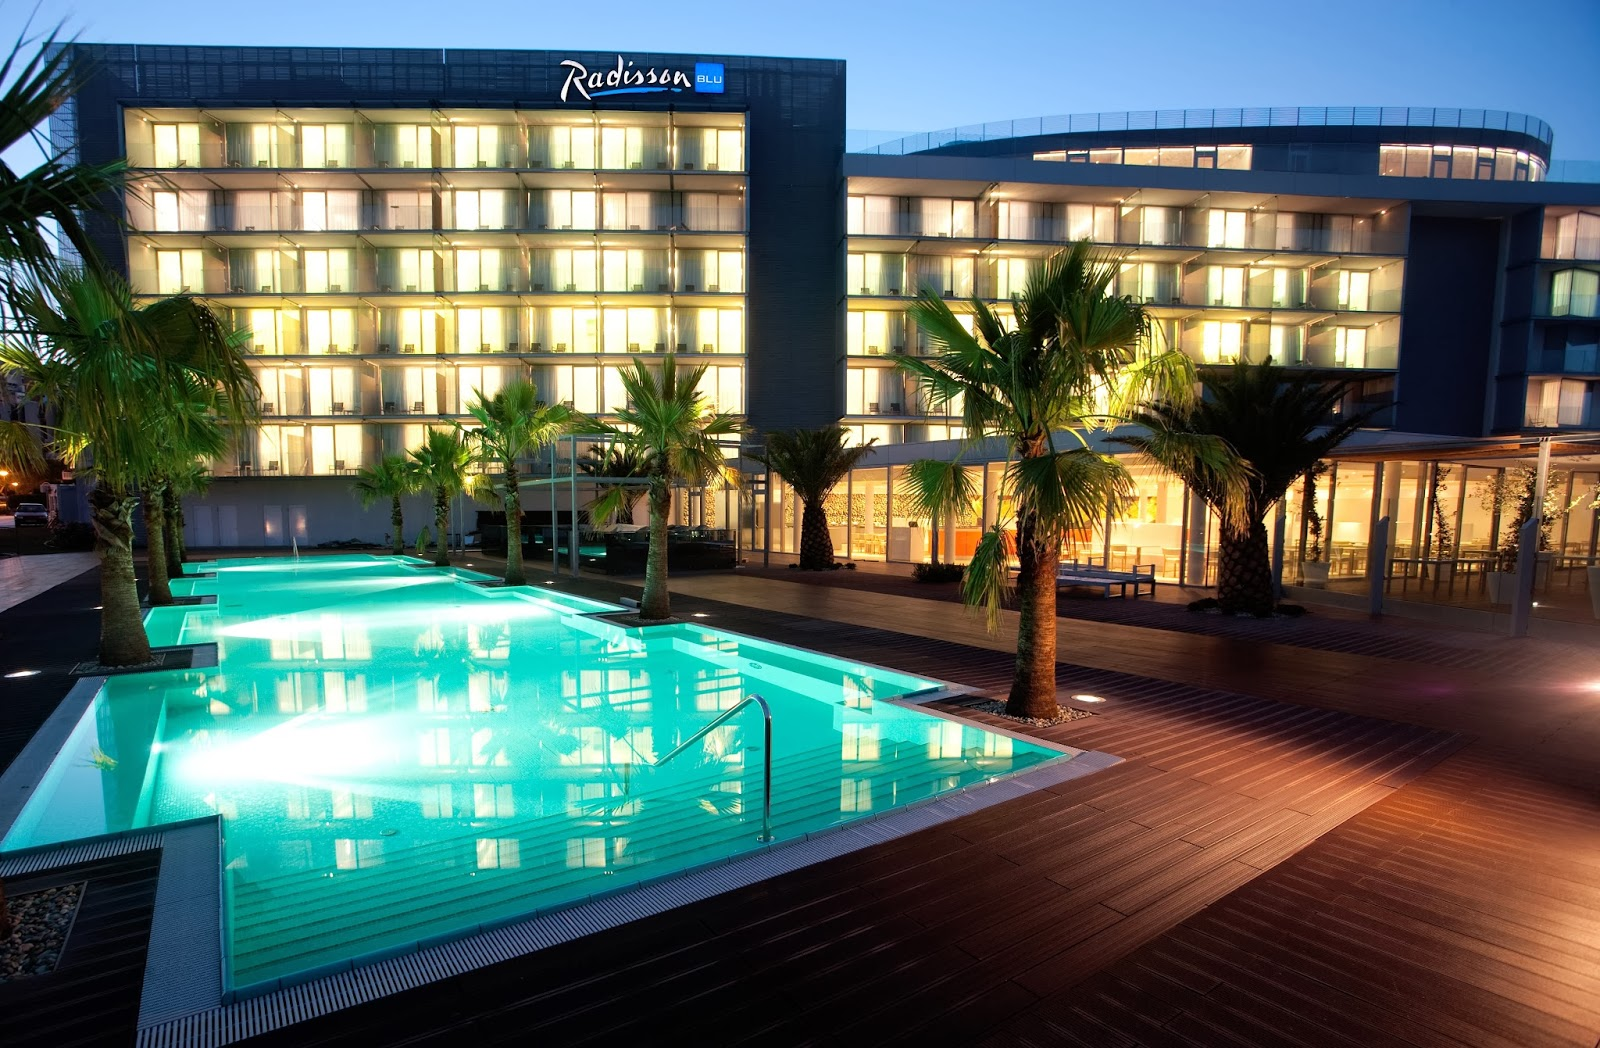 Luxury hotels radisson blu resort split croatia for Radisson hotel